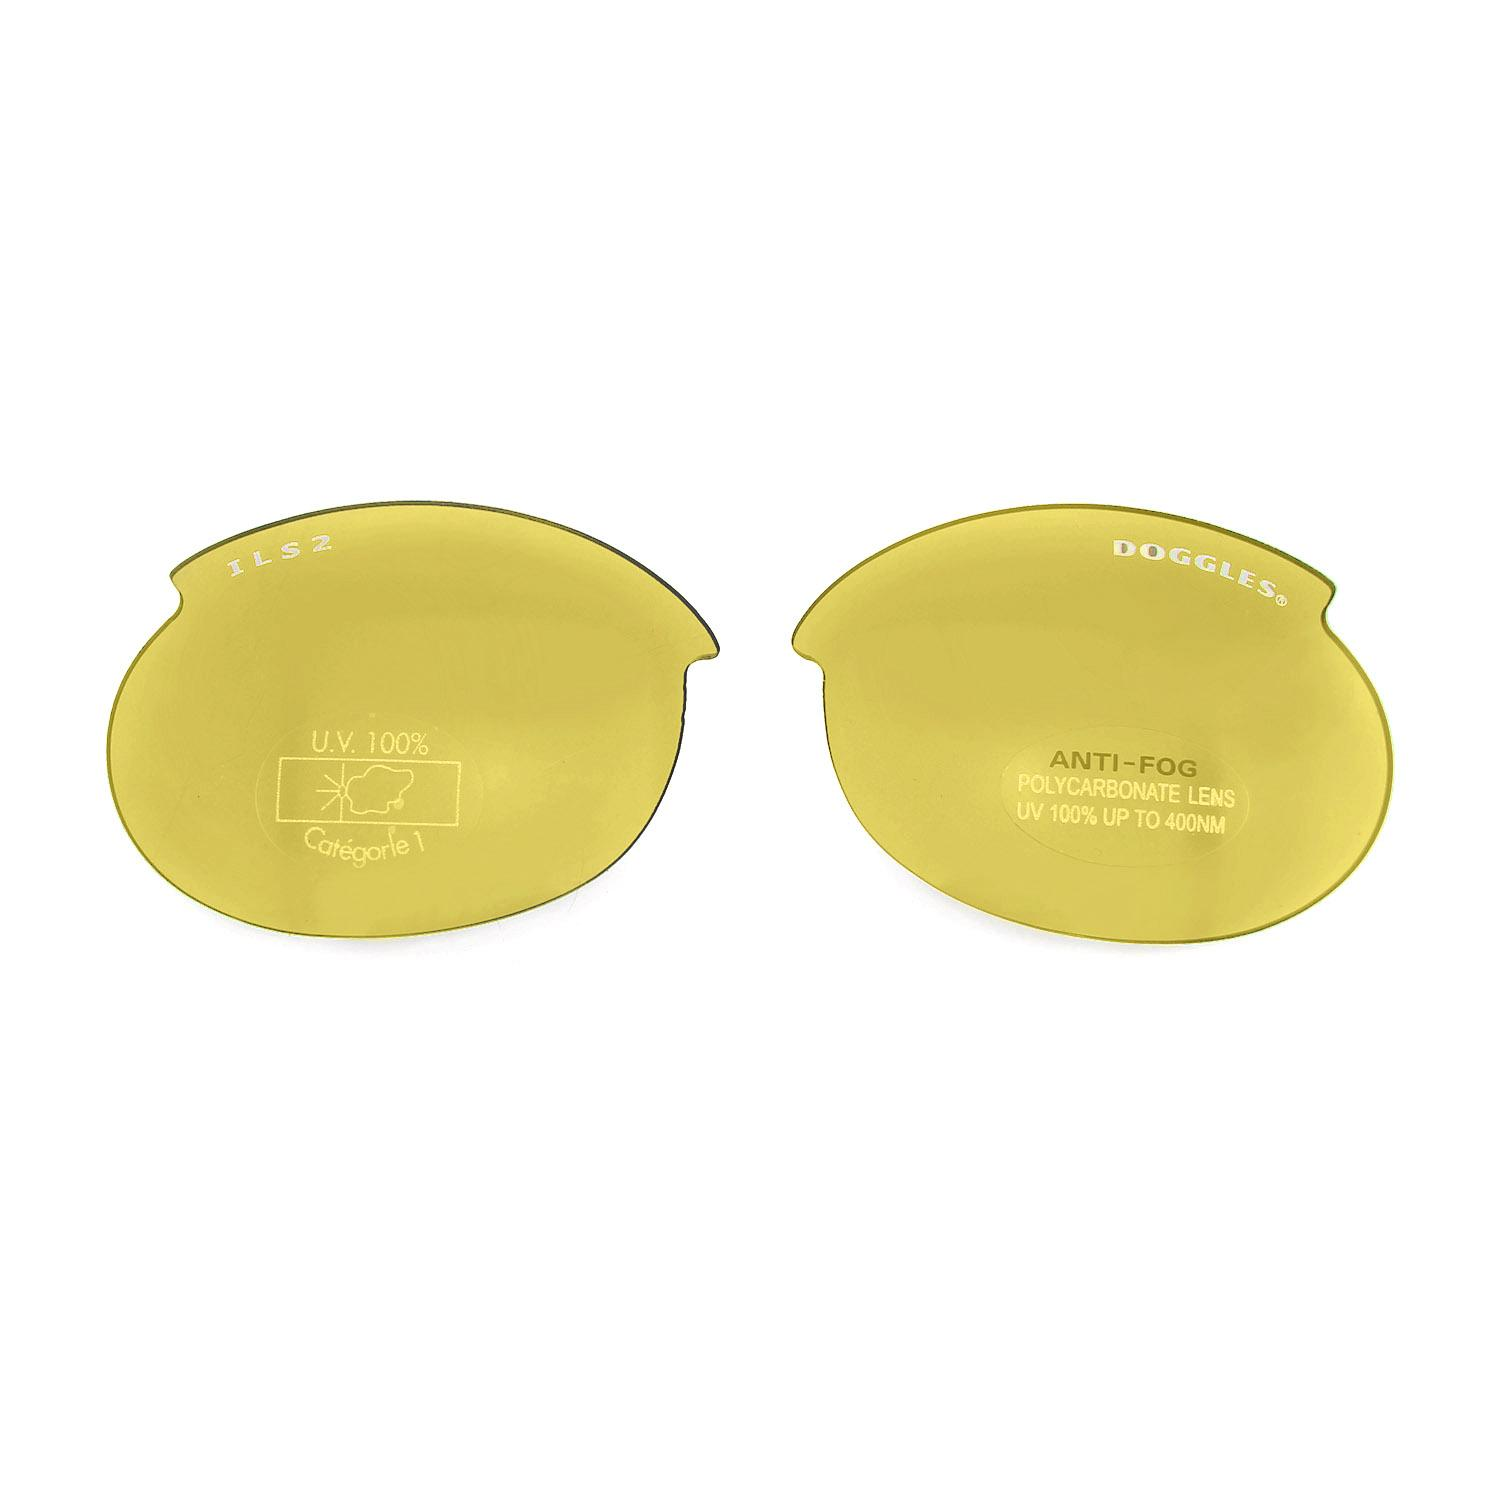 Doggles - Replacement ILS2 Lens Set - Yellow